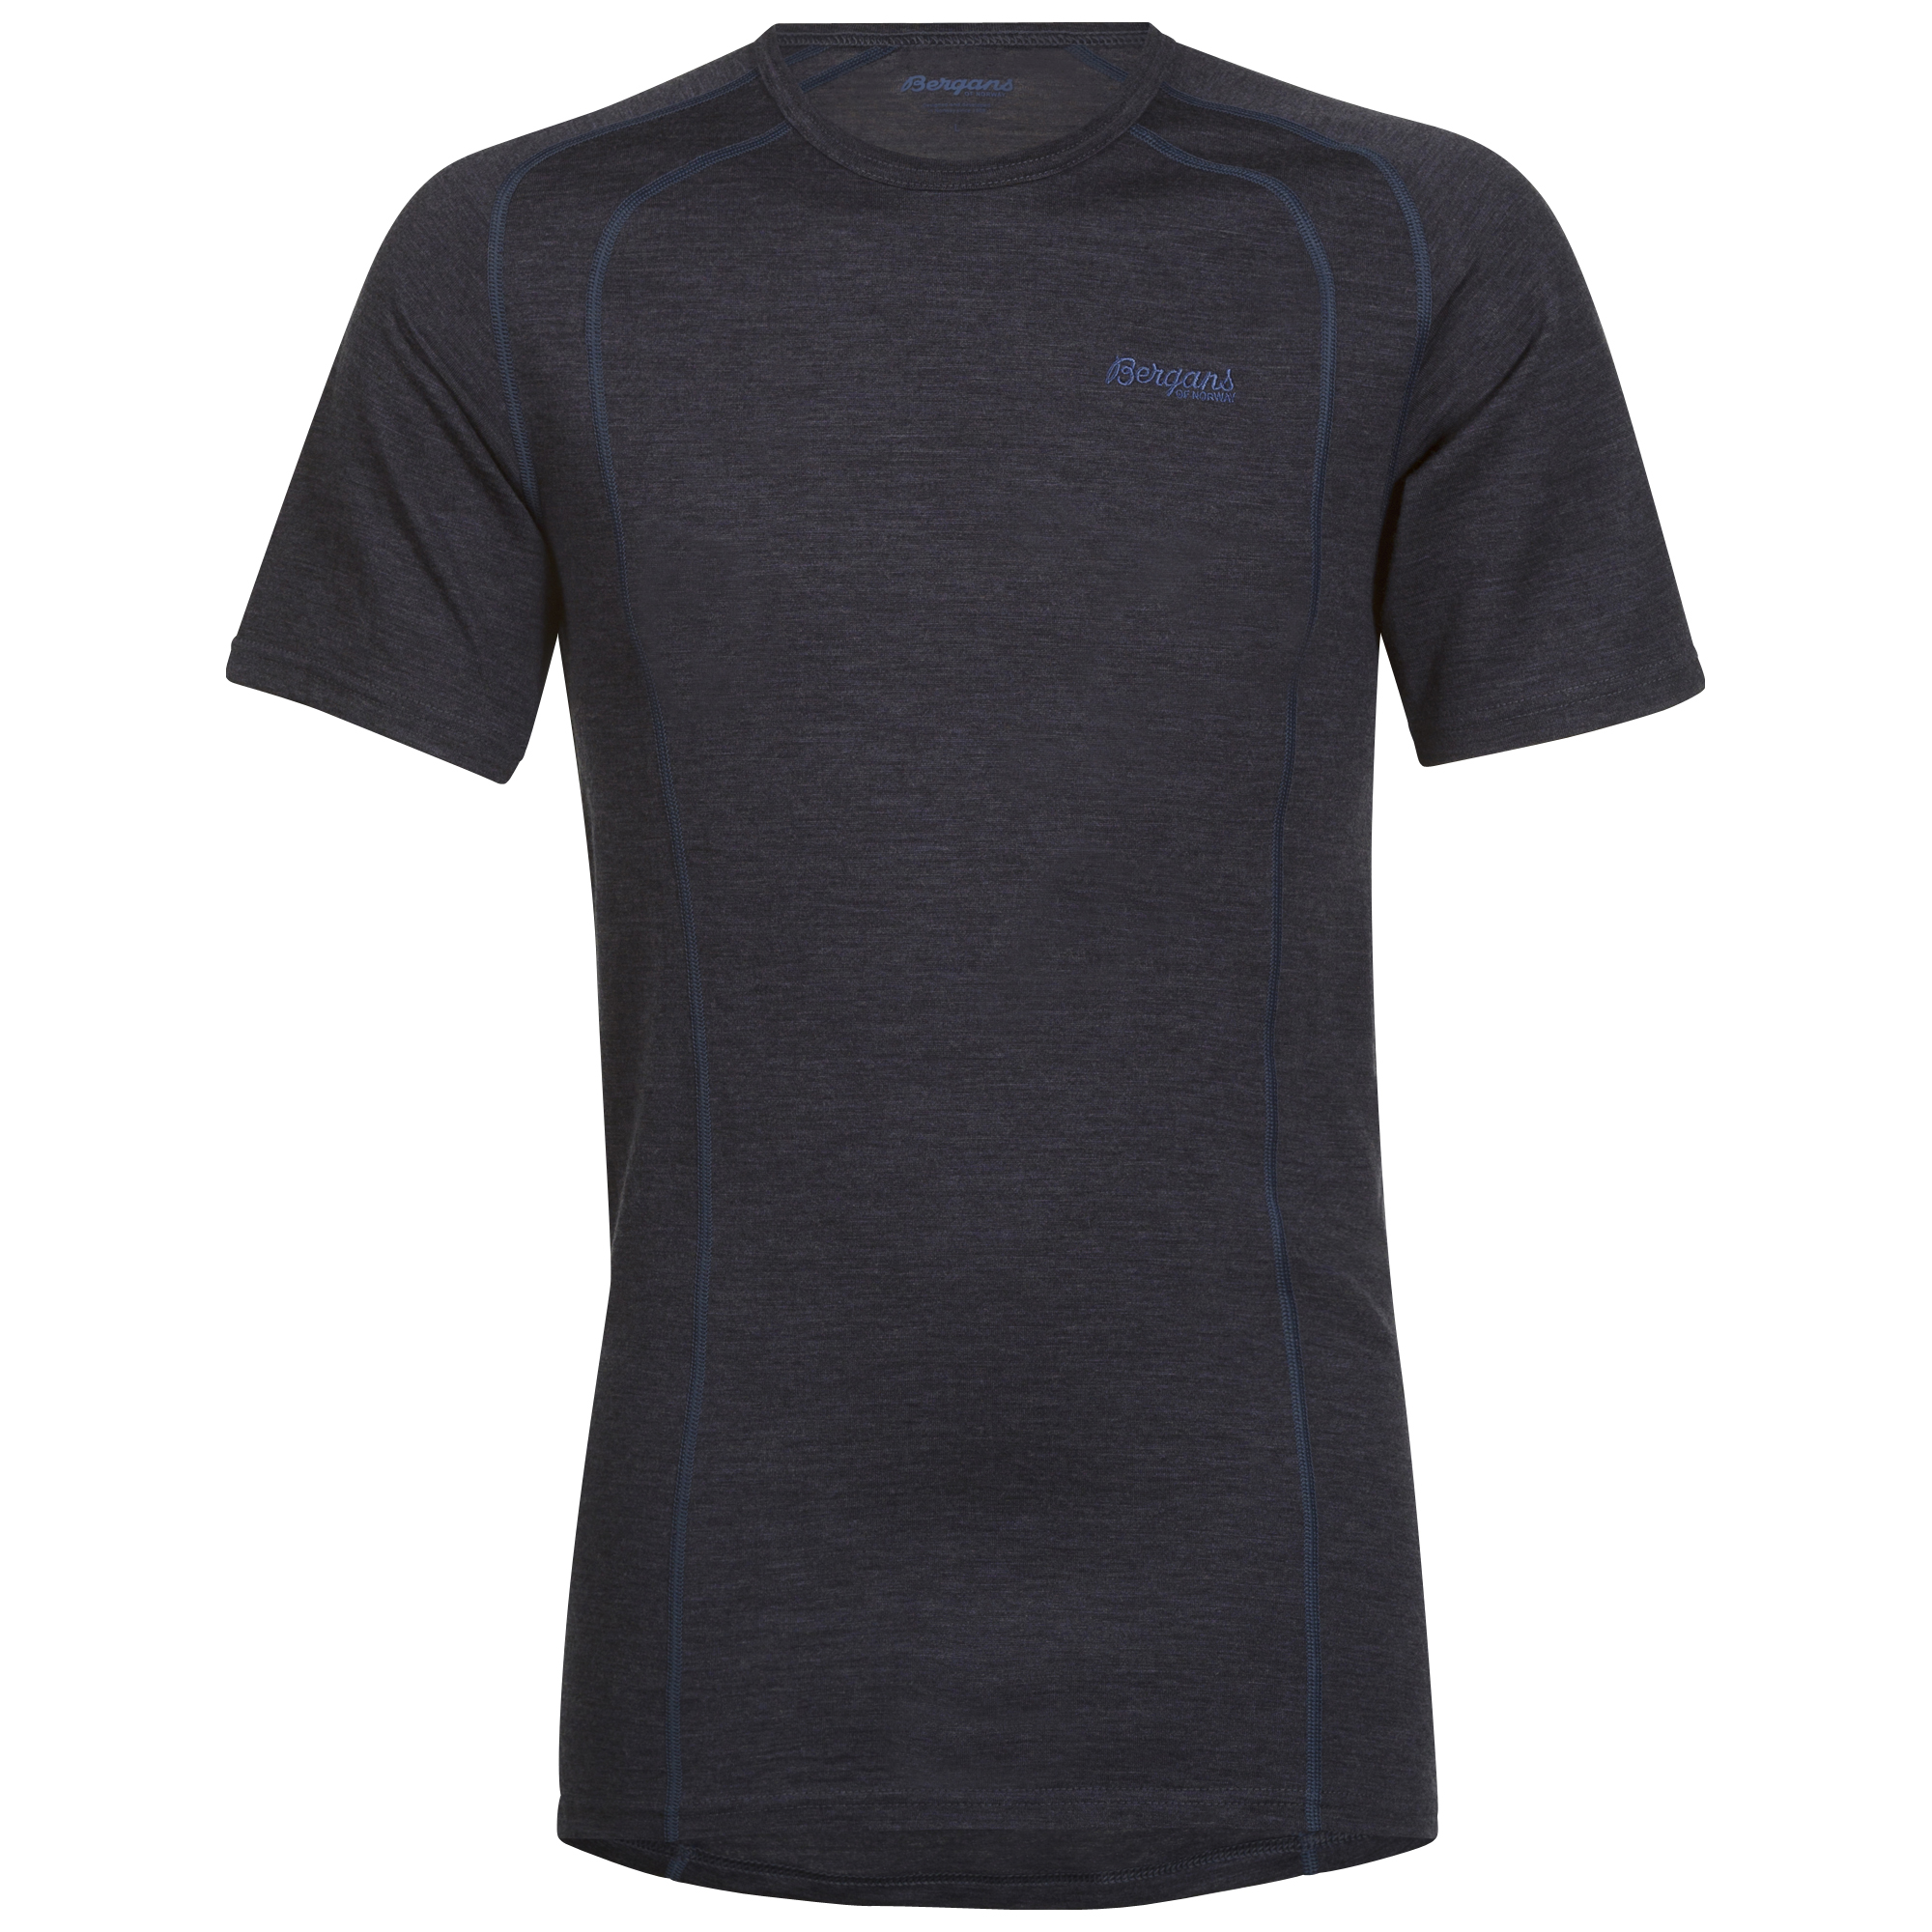 169020 Fjellrapp Tee NightBlue Mel